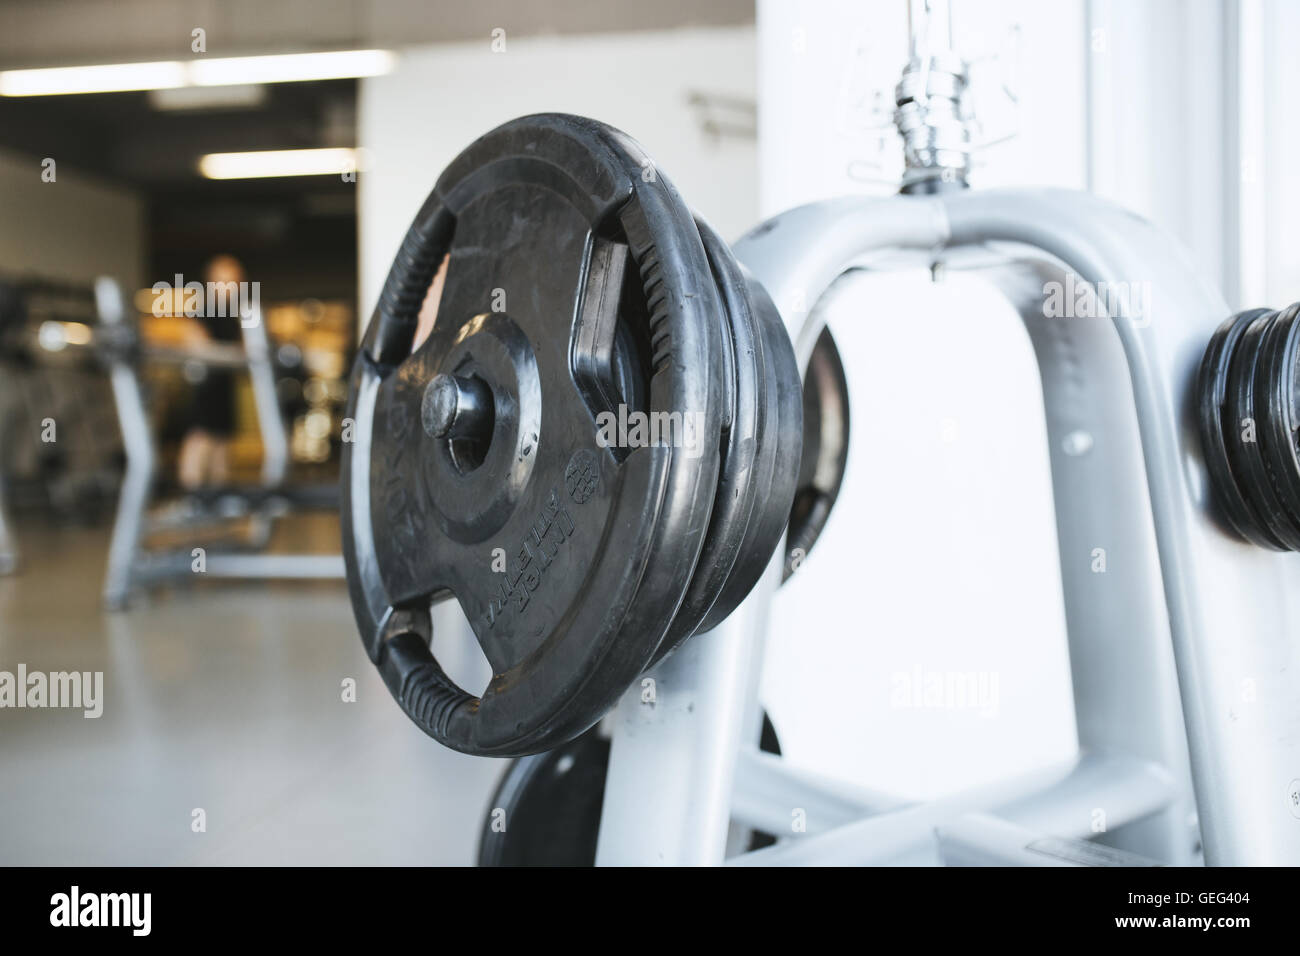 Gym barbell - Stock Image